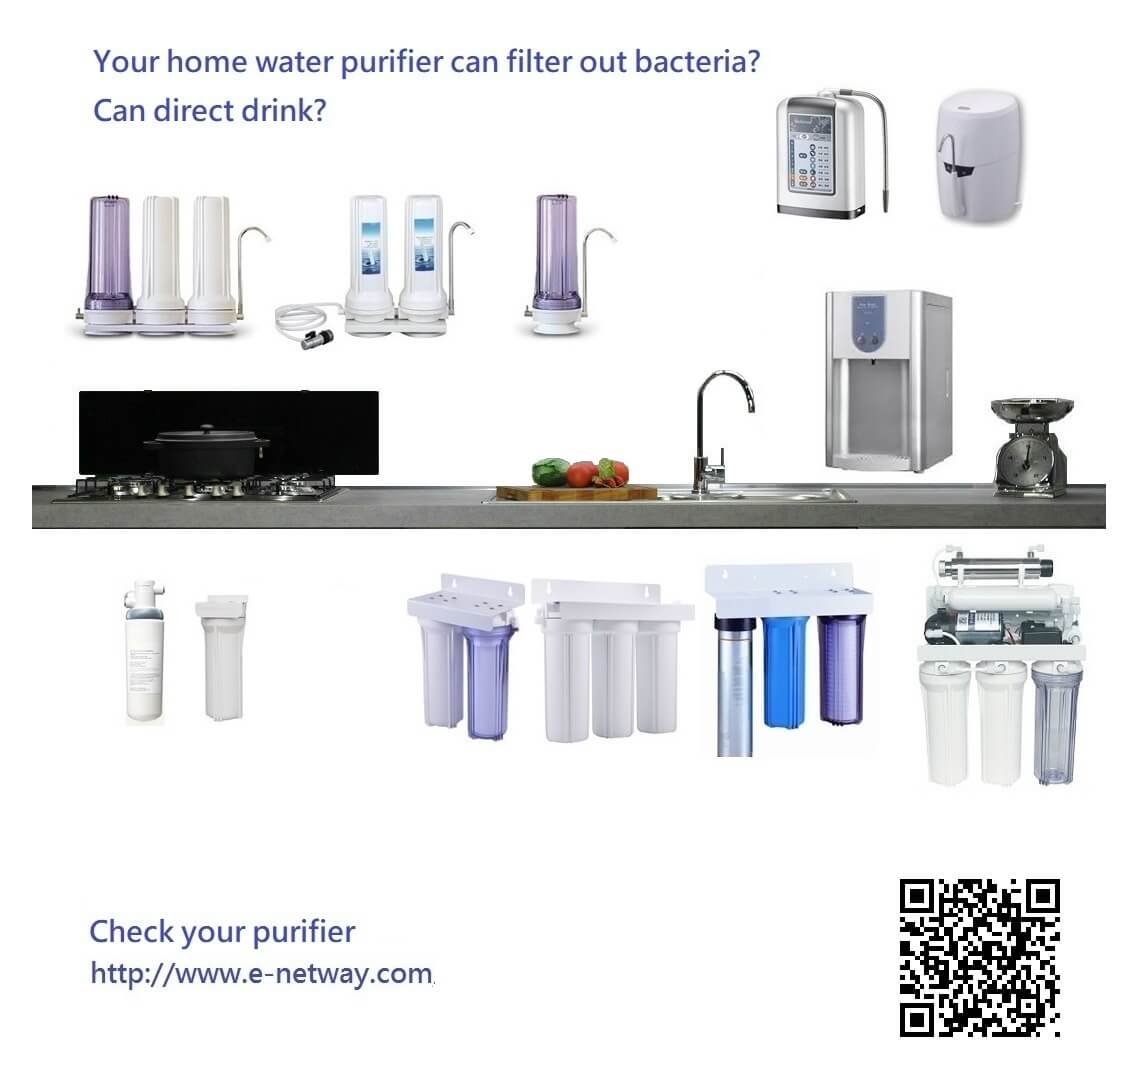 Why can't drink the water of the faucet? Reverse osmosis water filter reliable? You can check home water filtration system or alkaline water filter, and then replace some water cartridge filter to upgrade your water purifier, easily get the highest standards pure water.